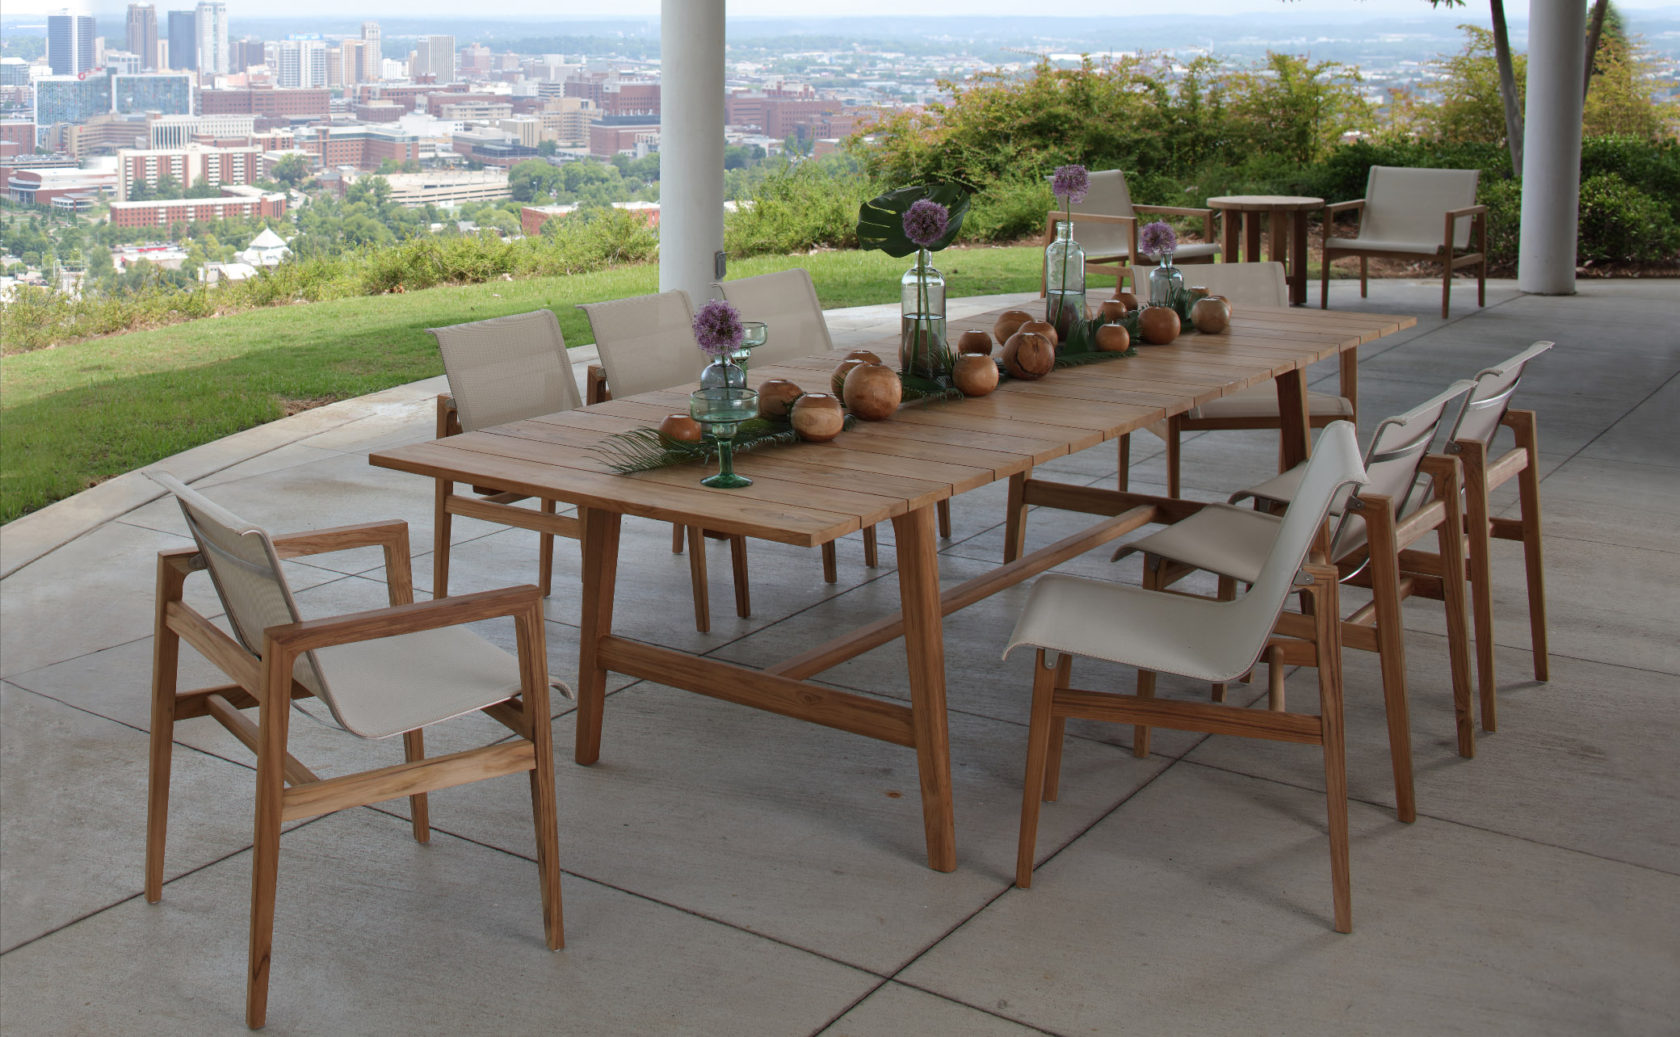 modern outdoor furniture made with Batyline Sling, teak, stainless steel